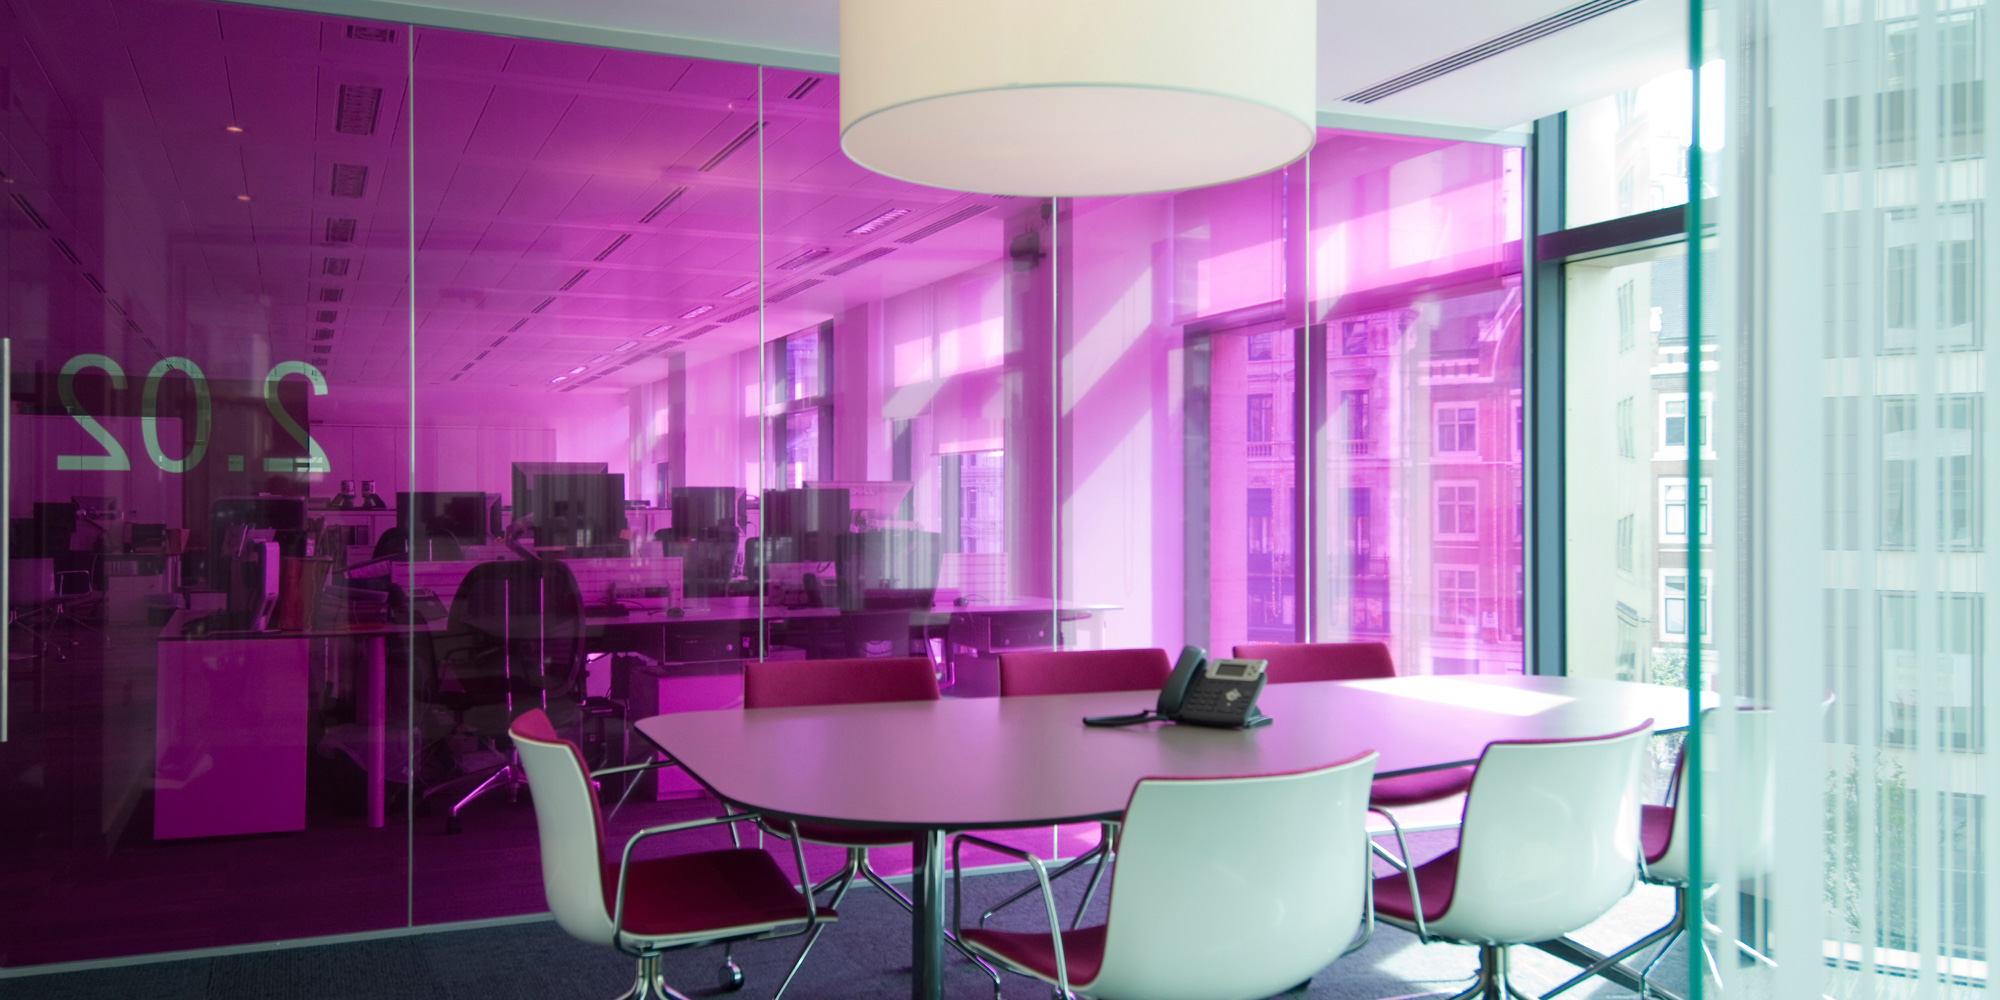 Workplace analysis and space planning - meeting room interior with coloured glass film